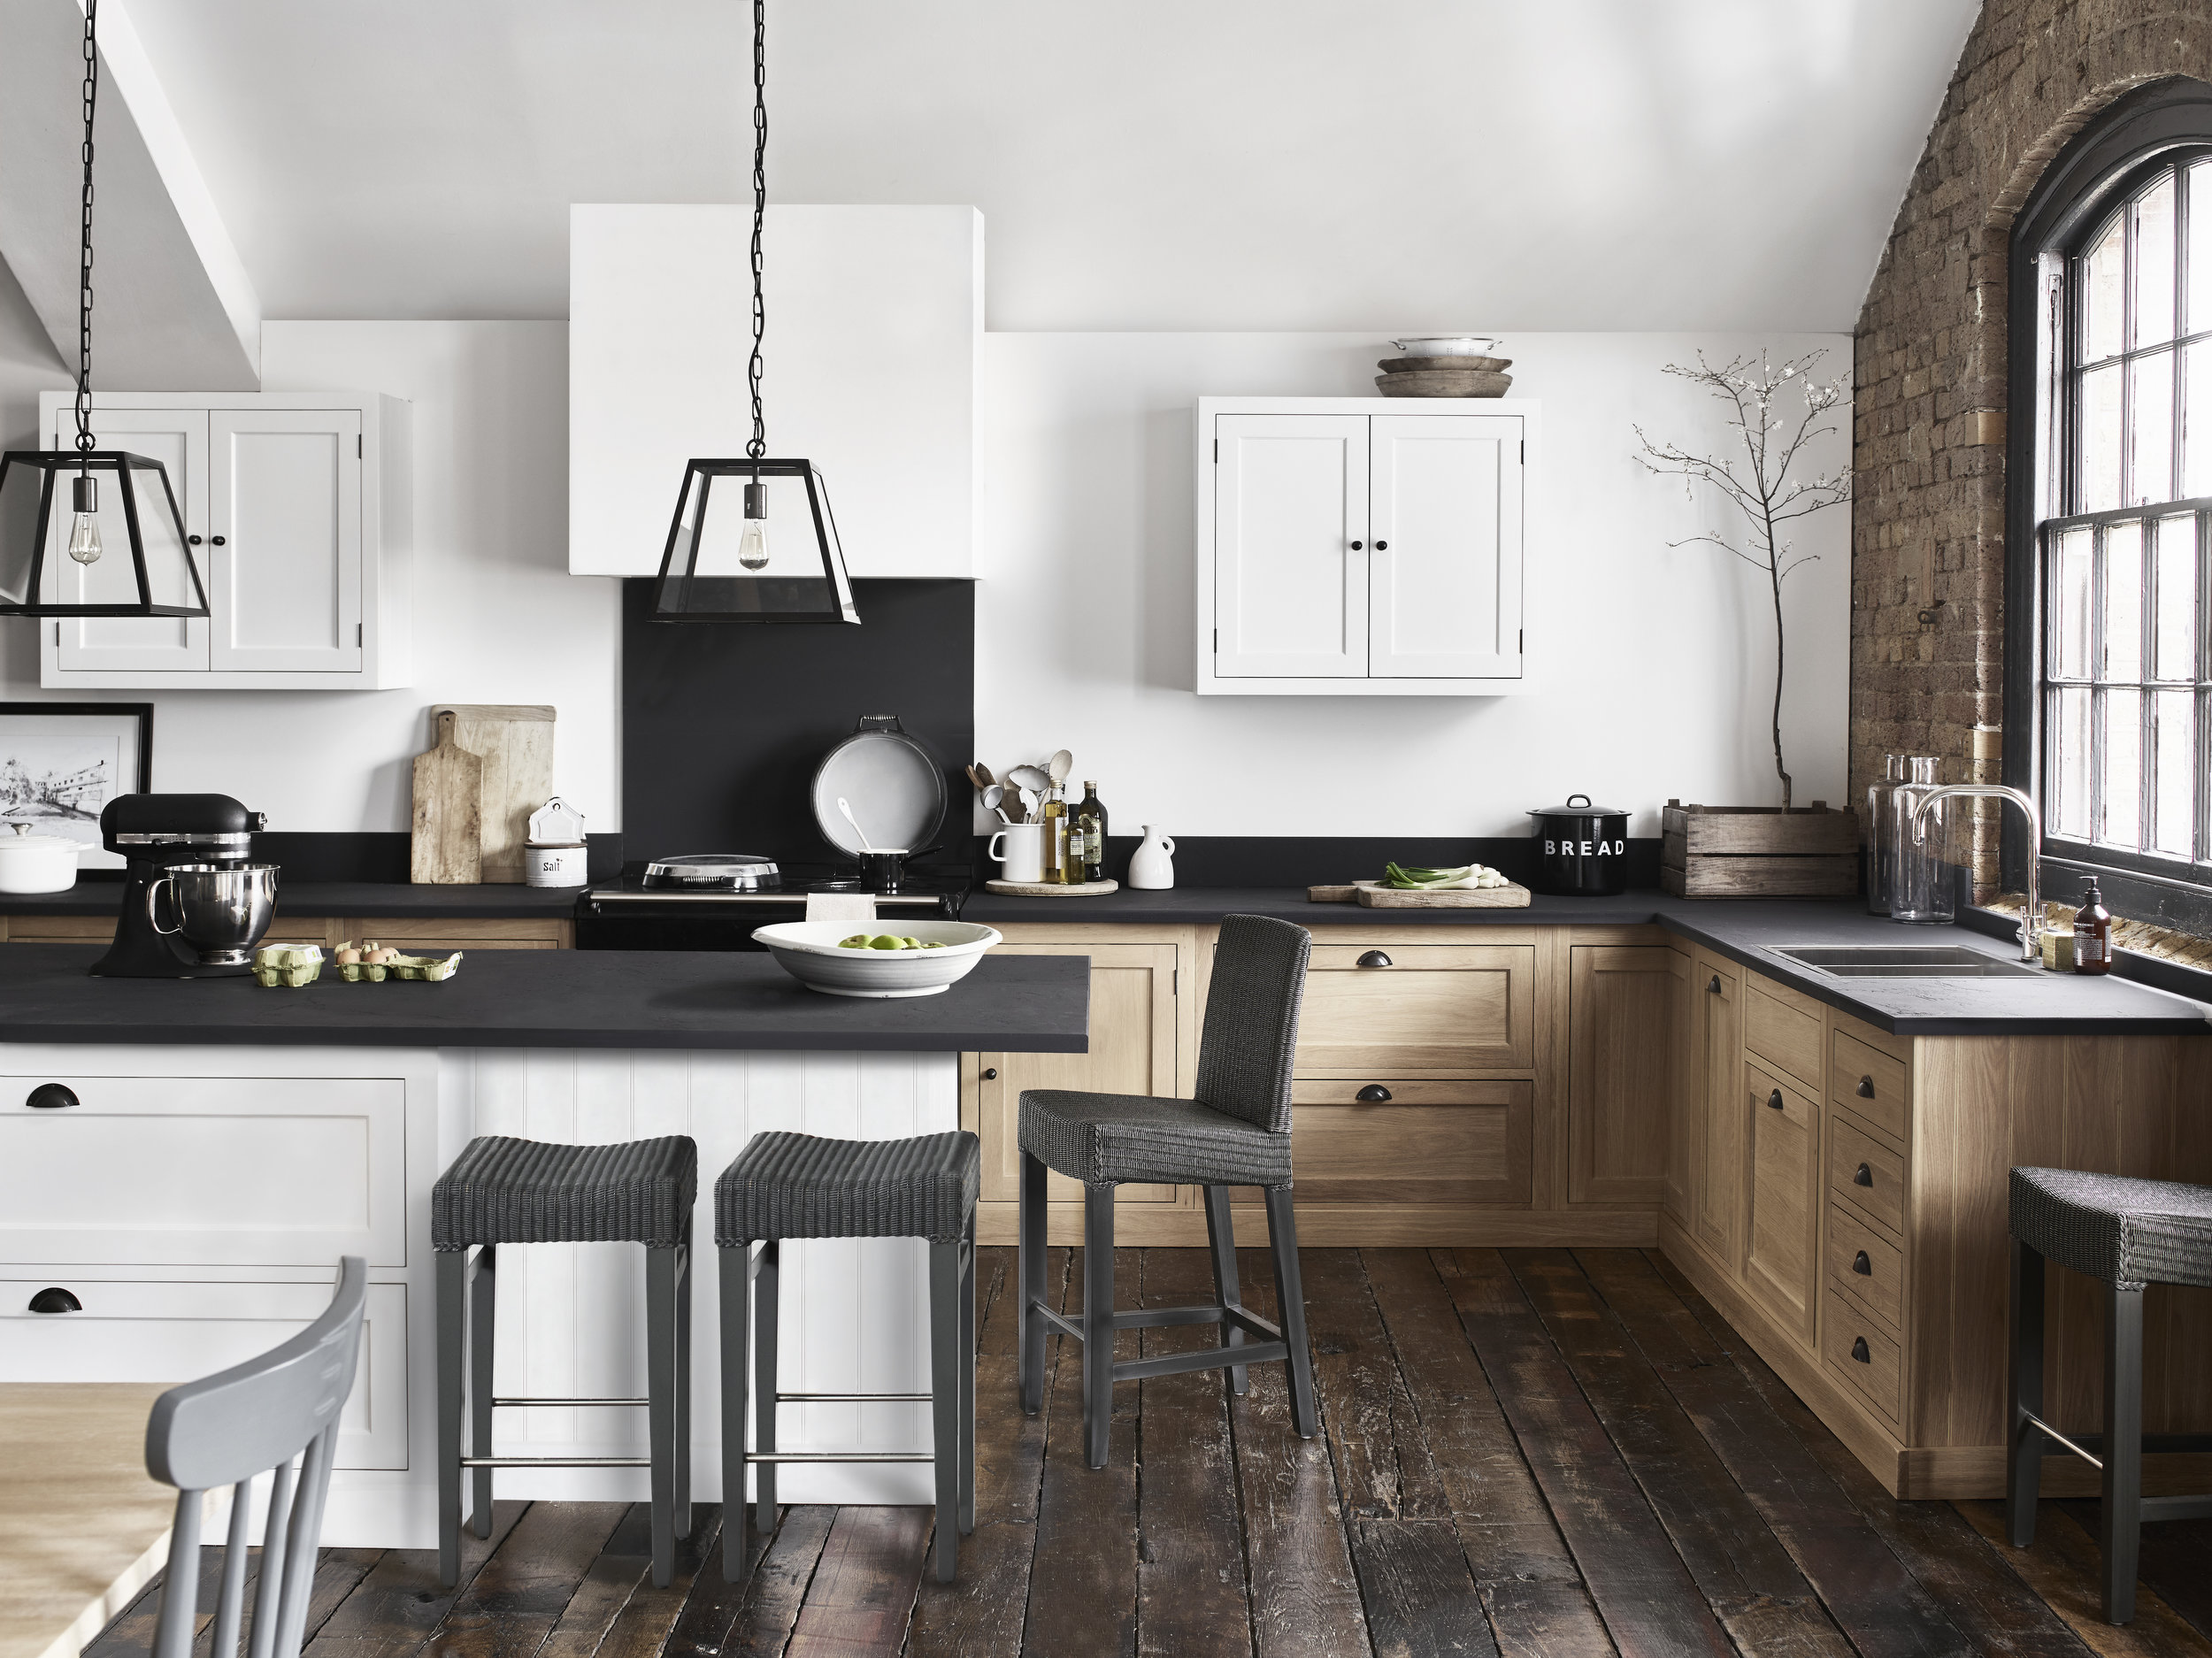 HENLEY_KITCHEN_039 1_RT.jpg